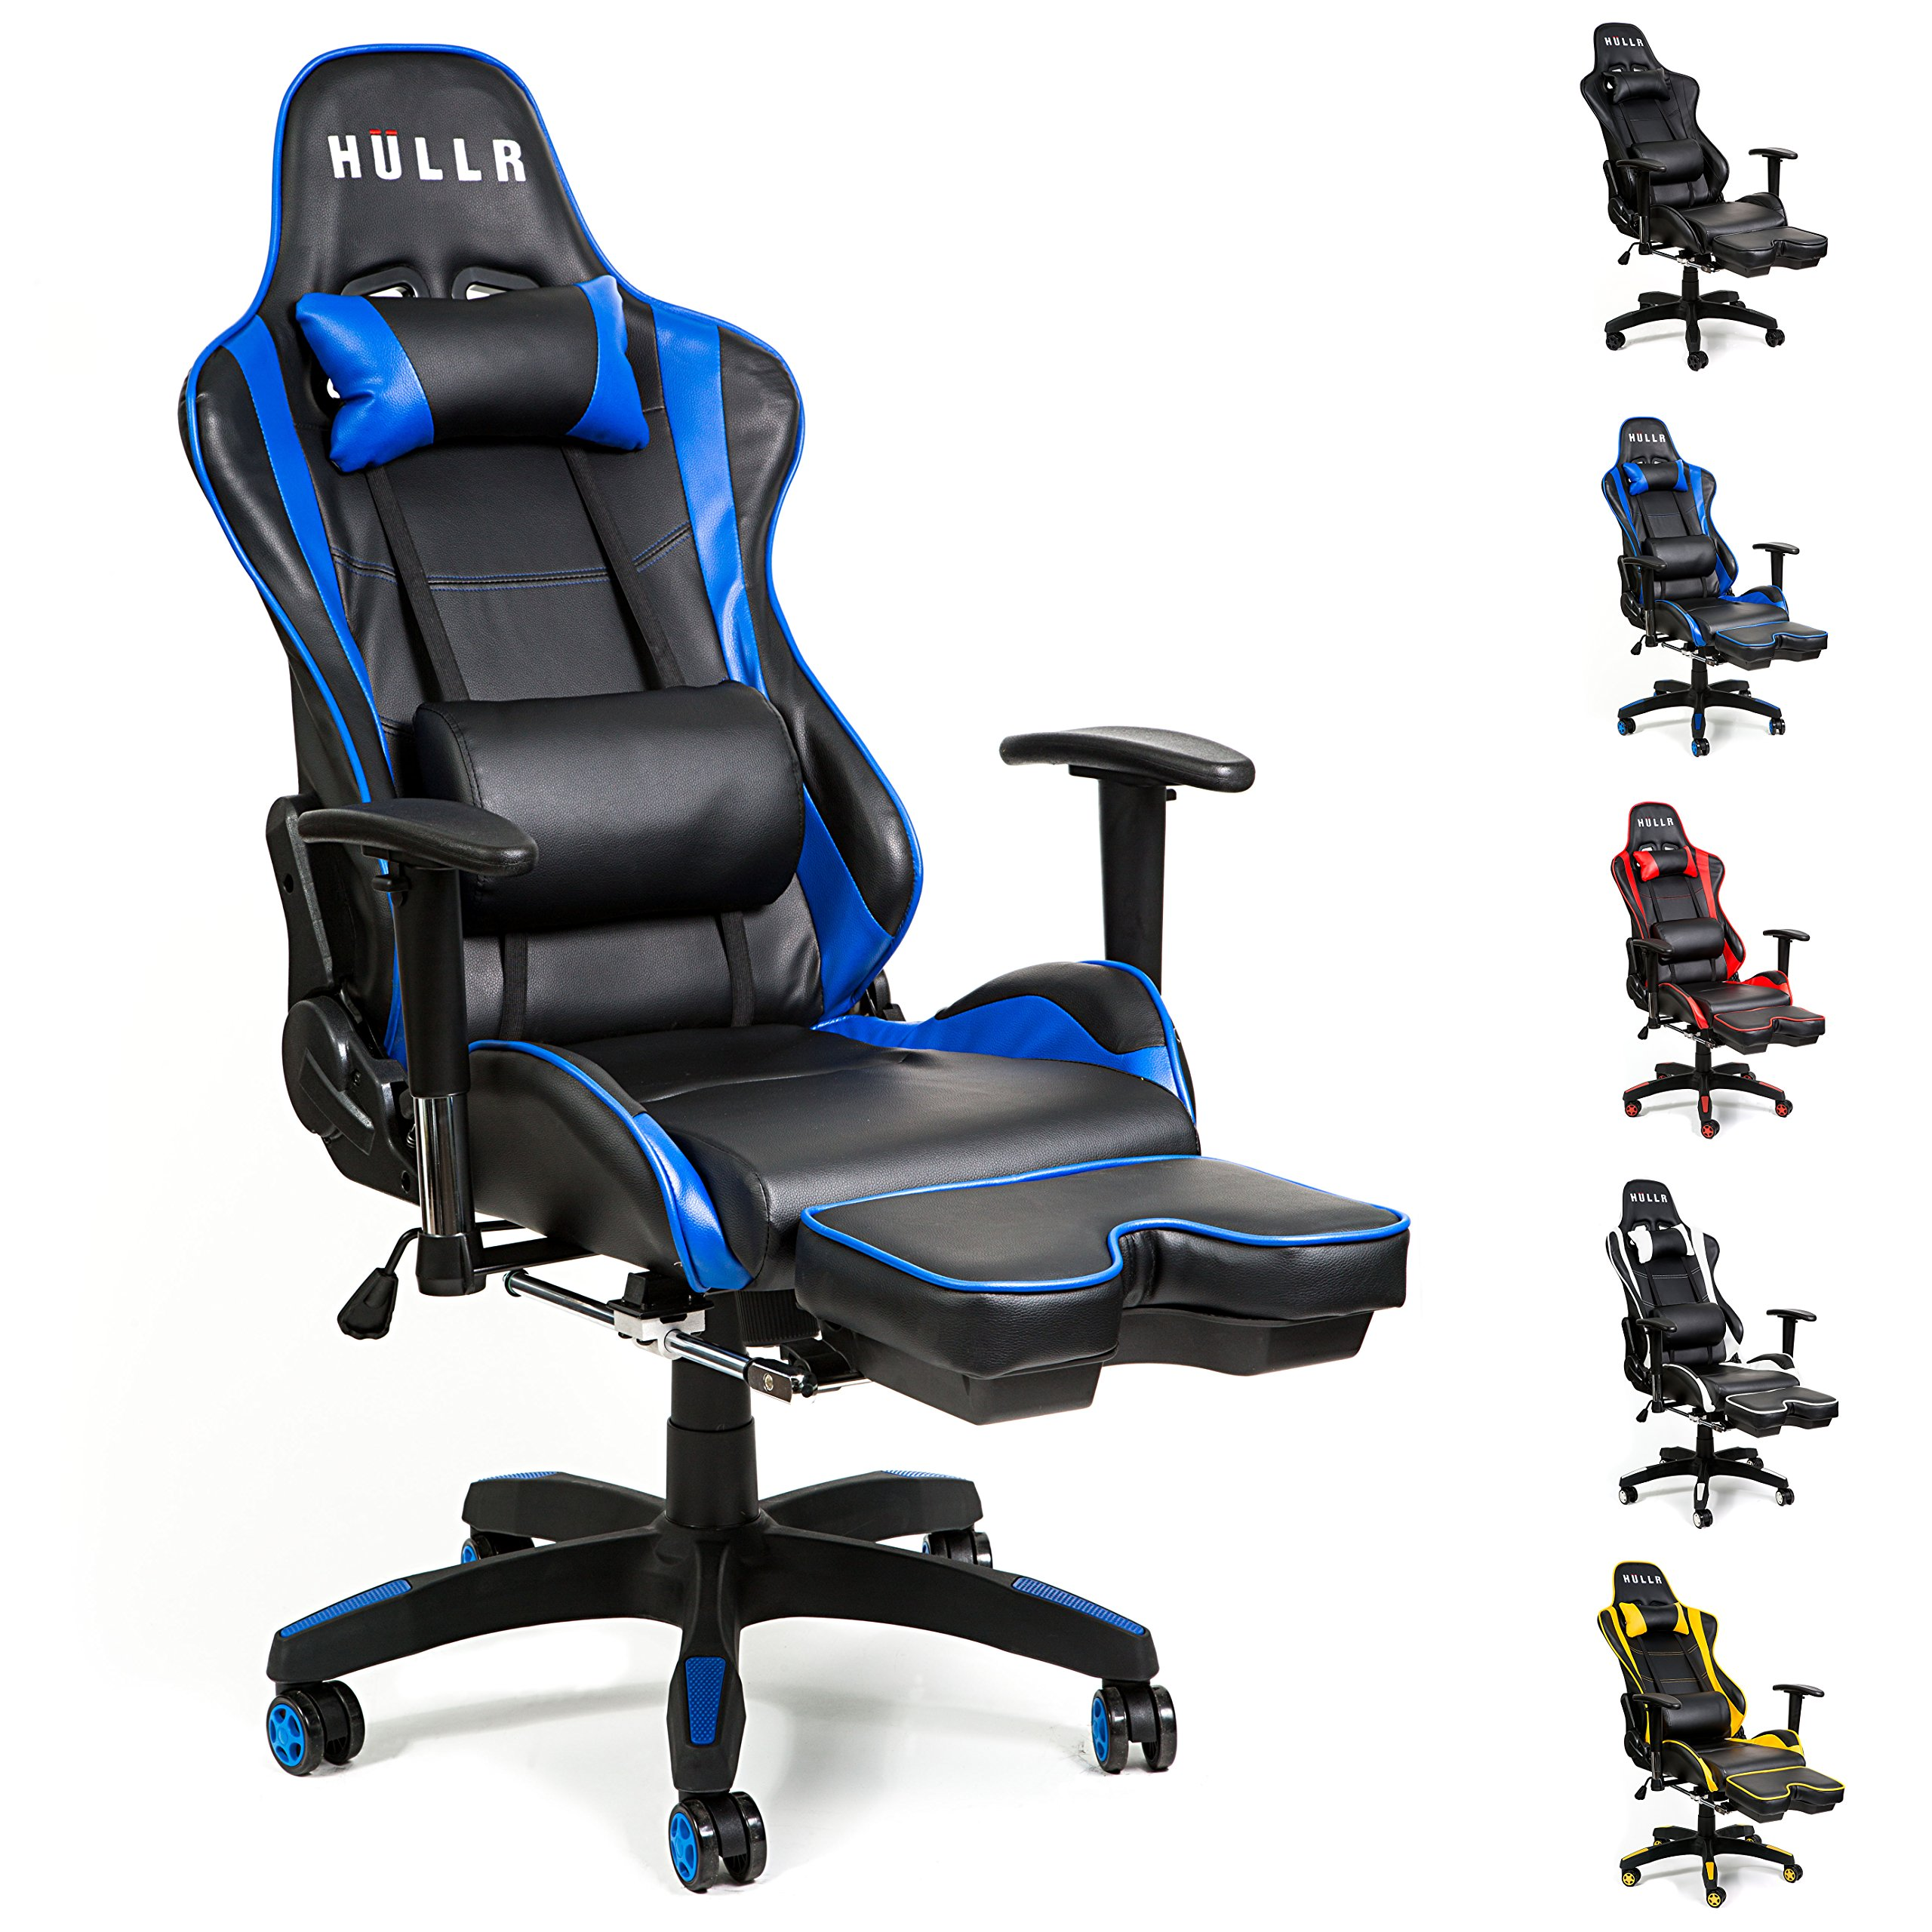 HULLR Gaming Racing Computer Office Chair With Foot Rest, Executive High Back Ergonomic Reclining Design With Detachable Lumbar Backrest & Headrest (PC PS4 XBOX Laptop) (Black/Blue) by HÜLLR